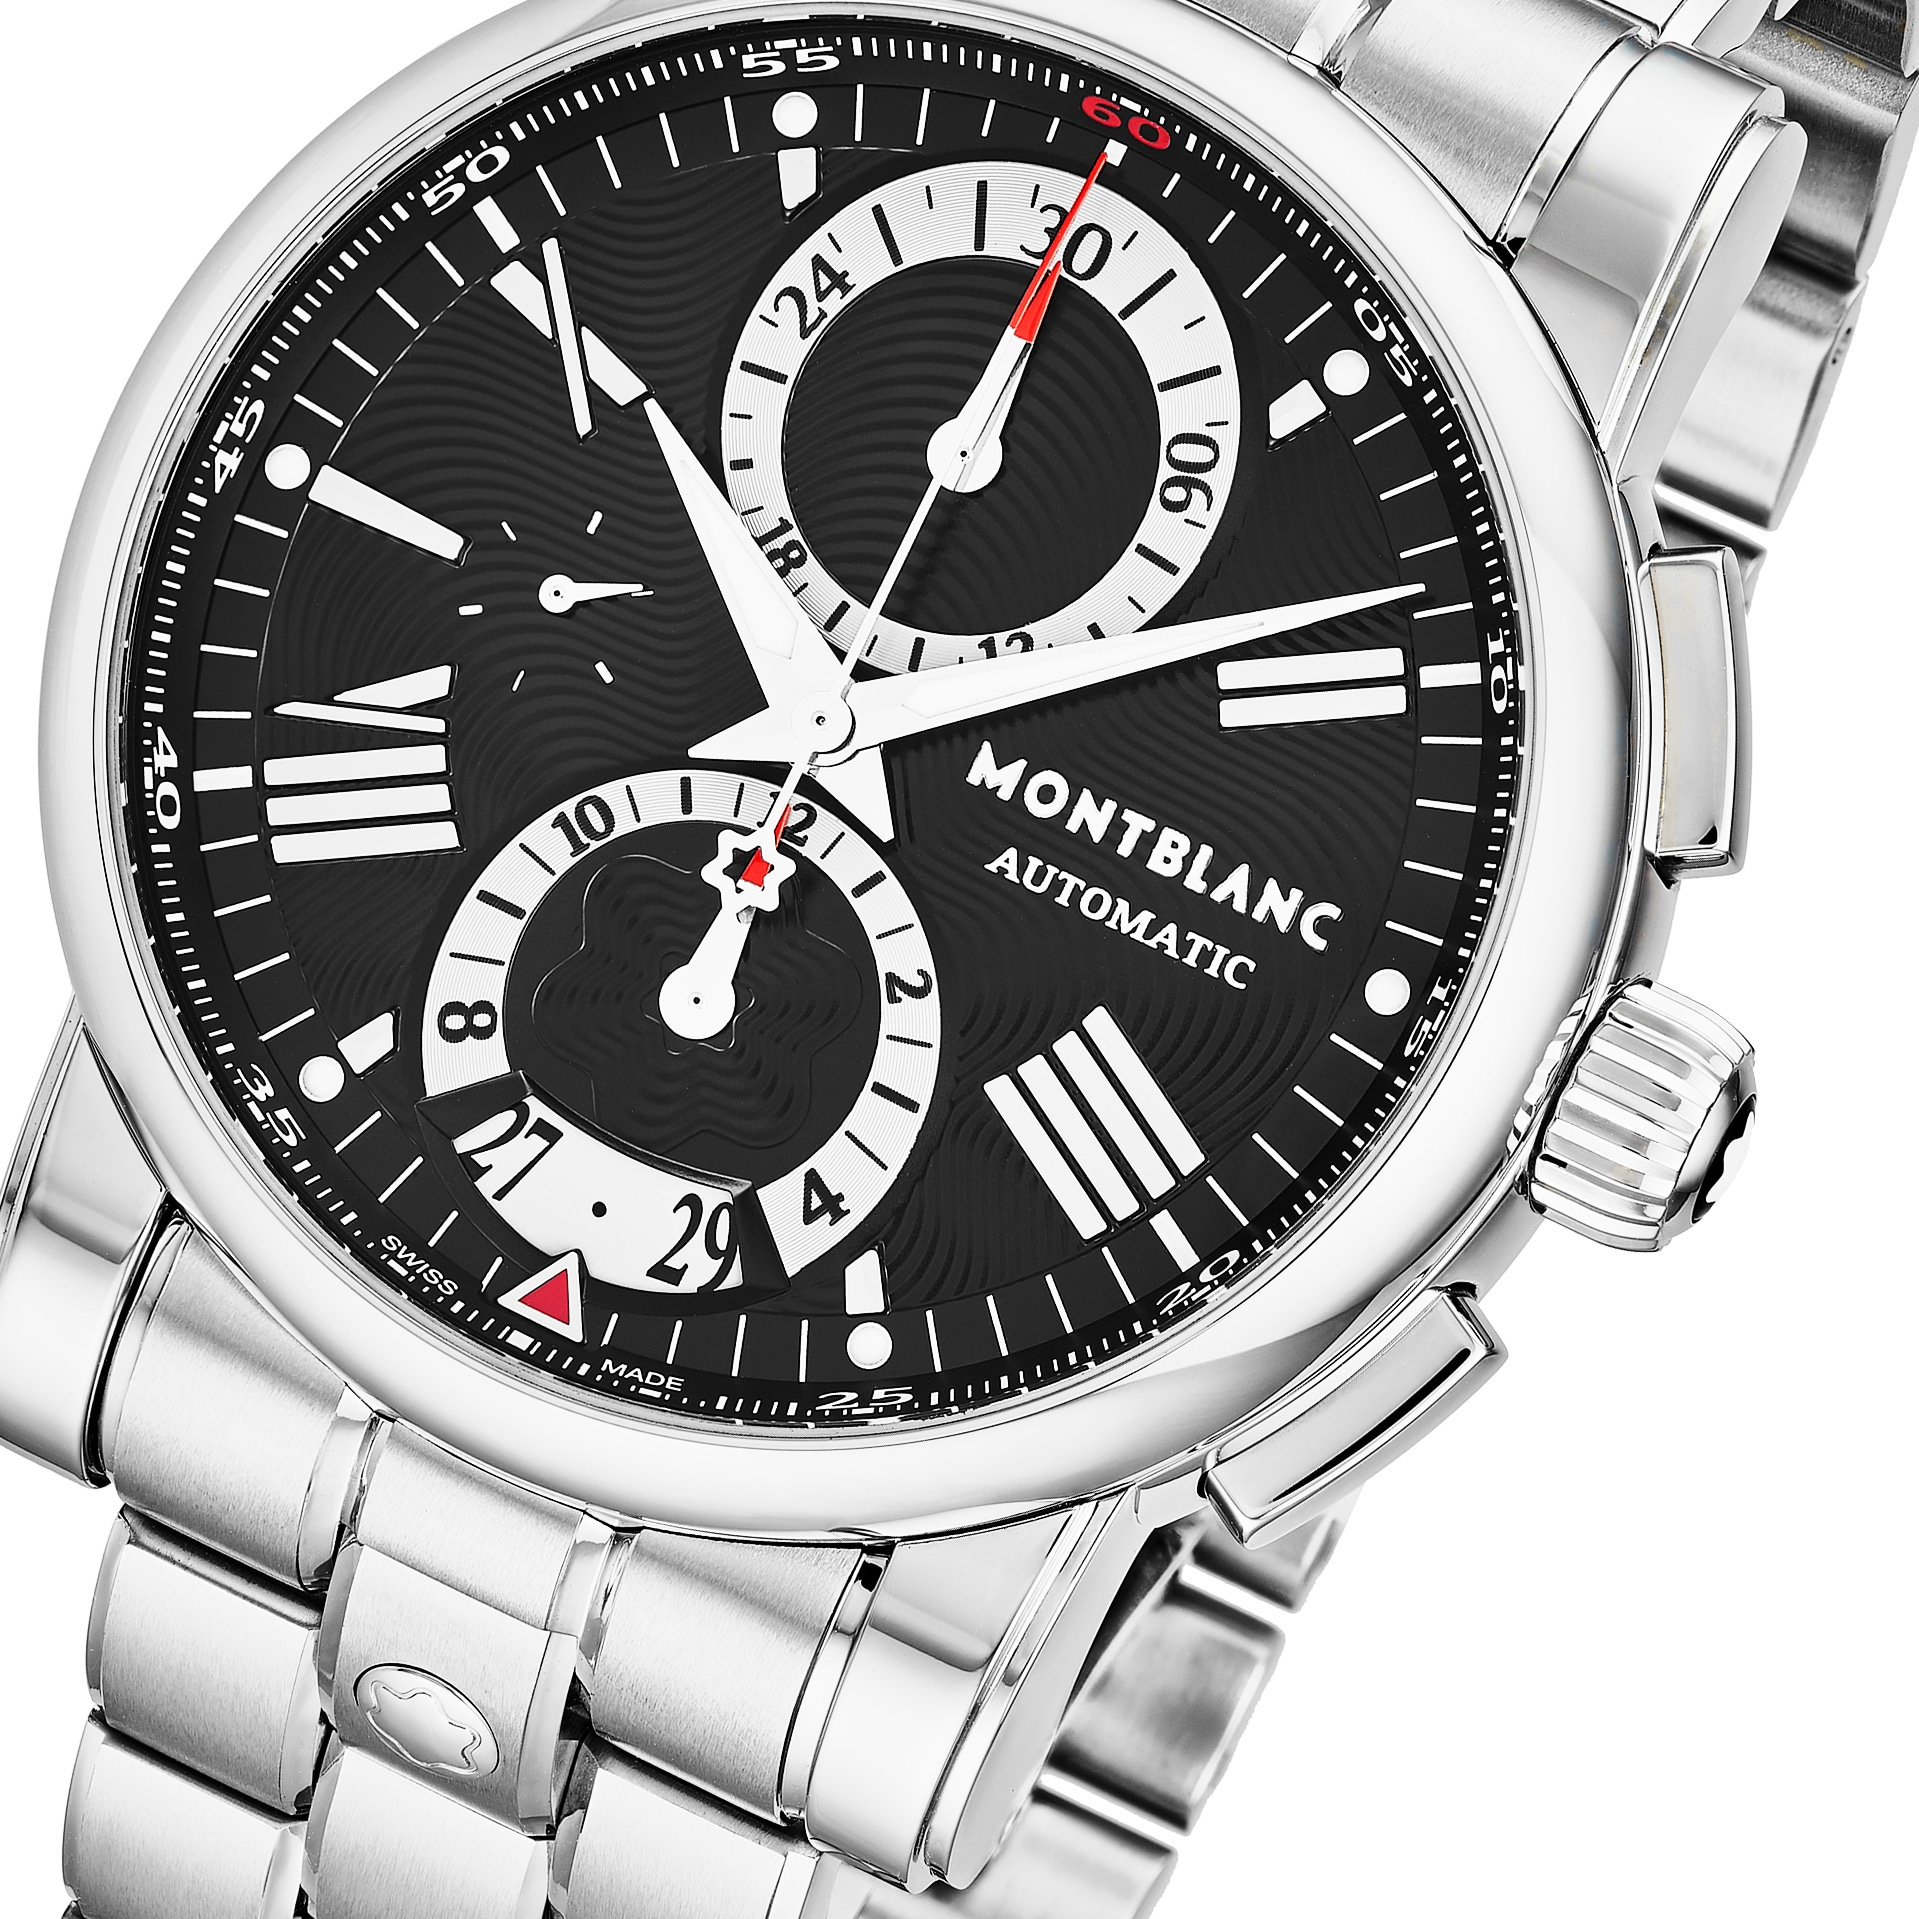 3356058f428 Shop Mont Blanc Men's 'Star' Black Dial Stainless Steel Chronograph Swiss  Automatic Watch - Free Shipping Today - Overstock - 18227947